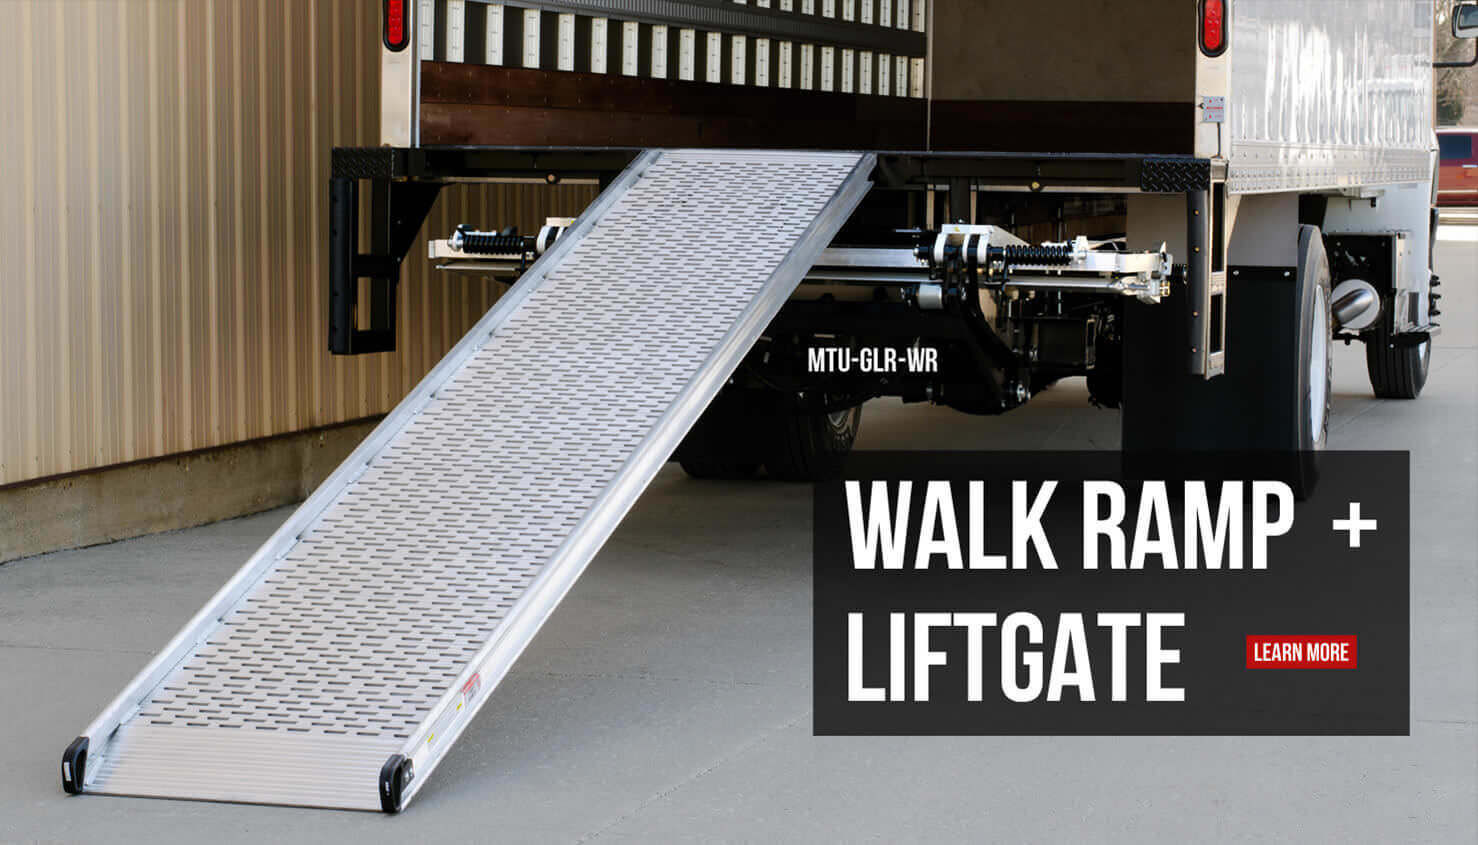 slide4 truck liftgate tailgate lifts & trailer gates for trucks anthony liftgate wiring diagram at honlapkeszites.co